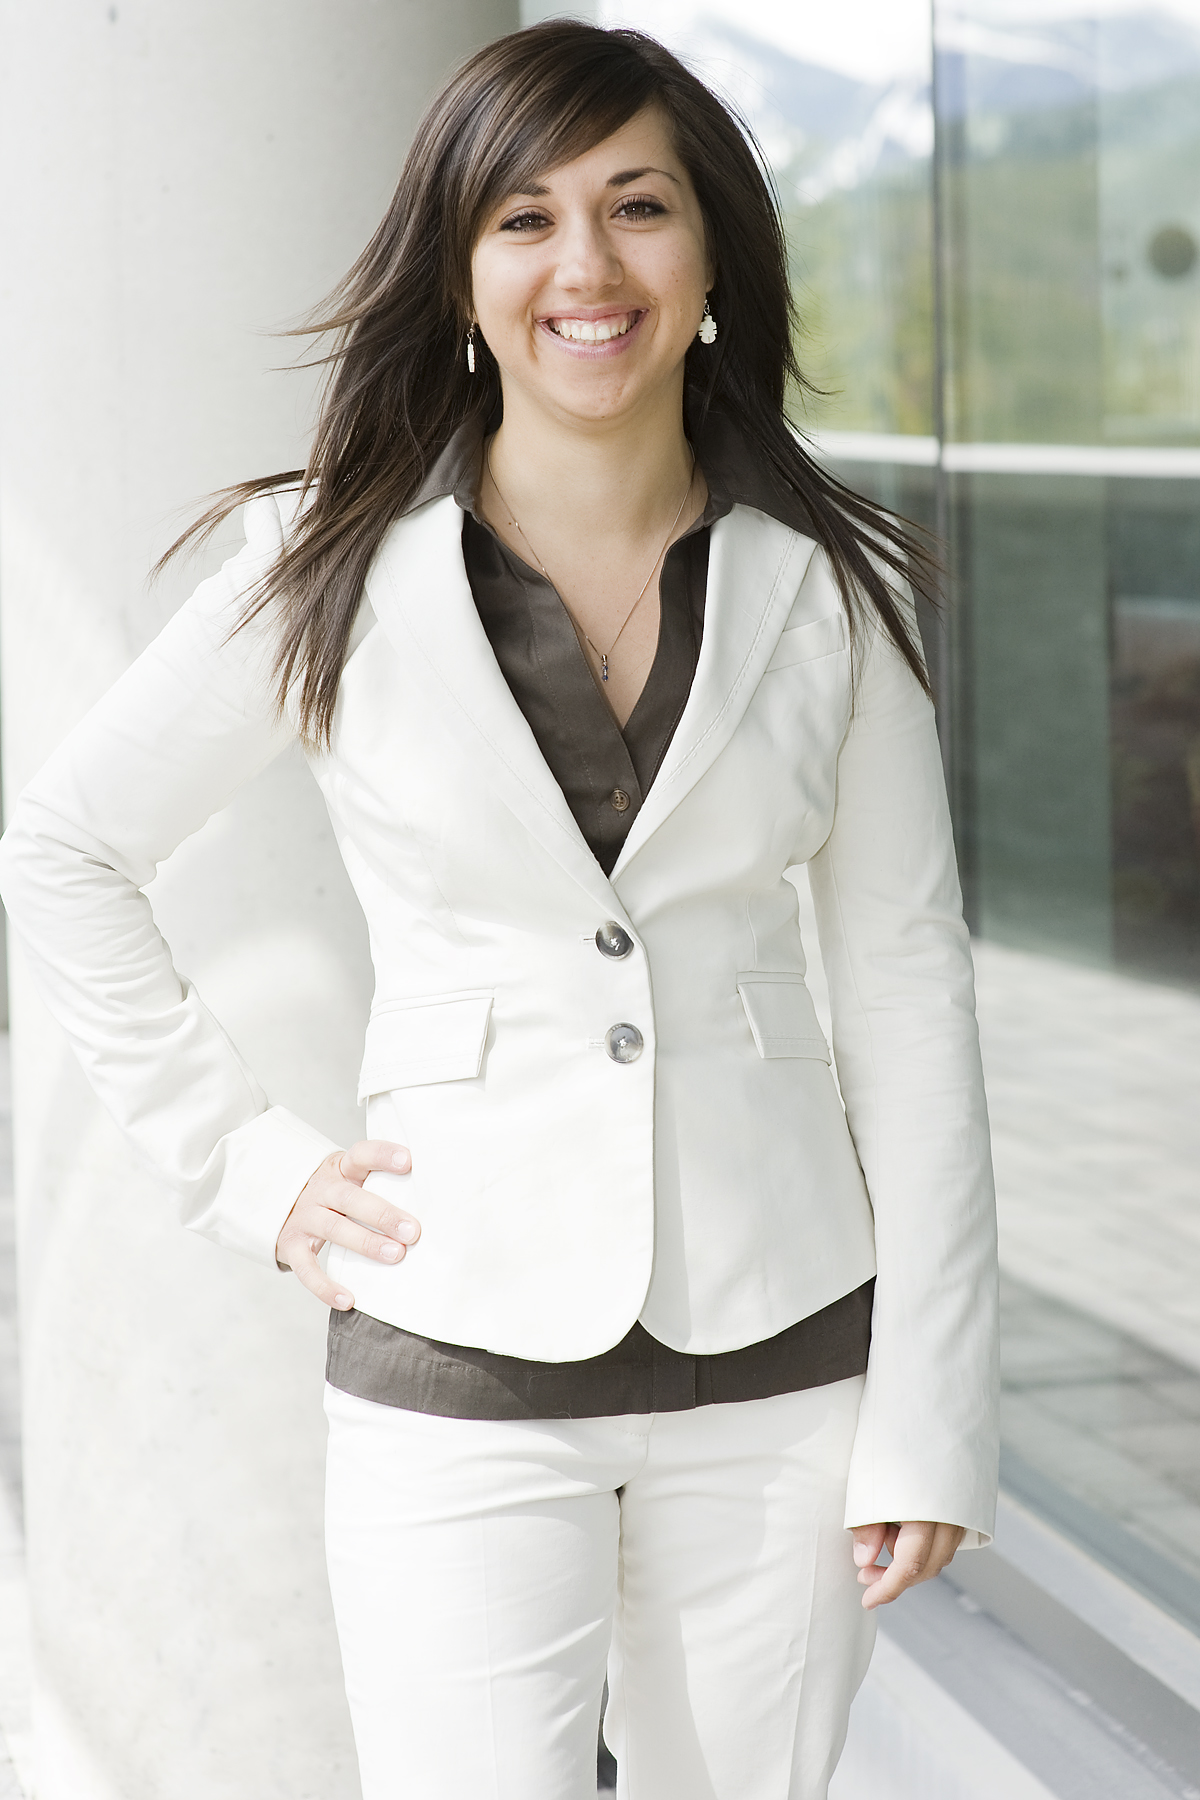 2011 Corporate Portraits; Audrey Duval